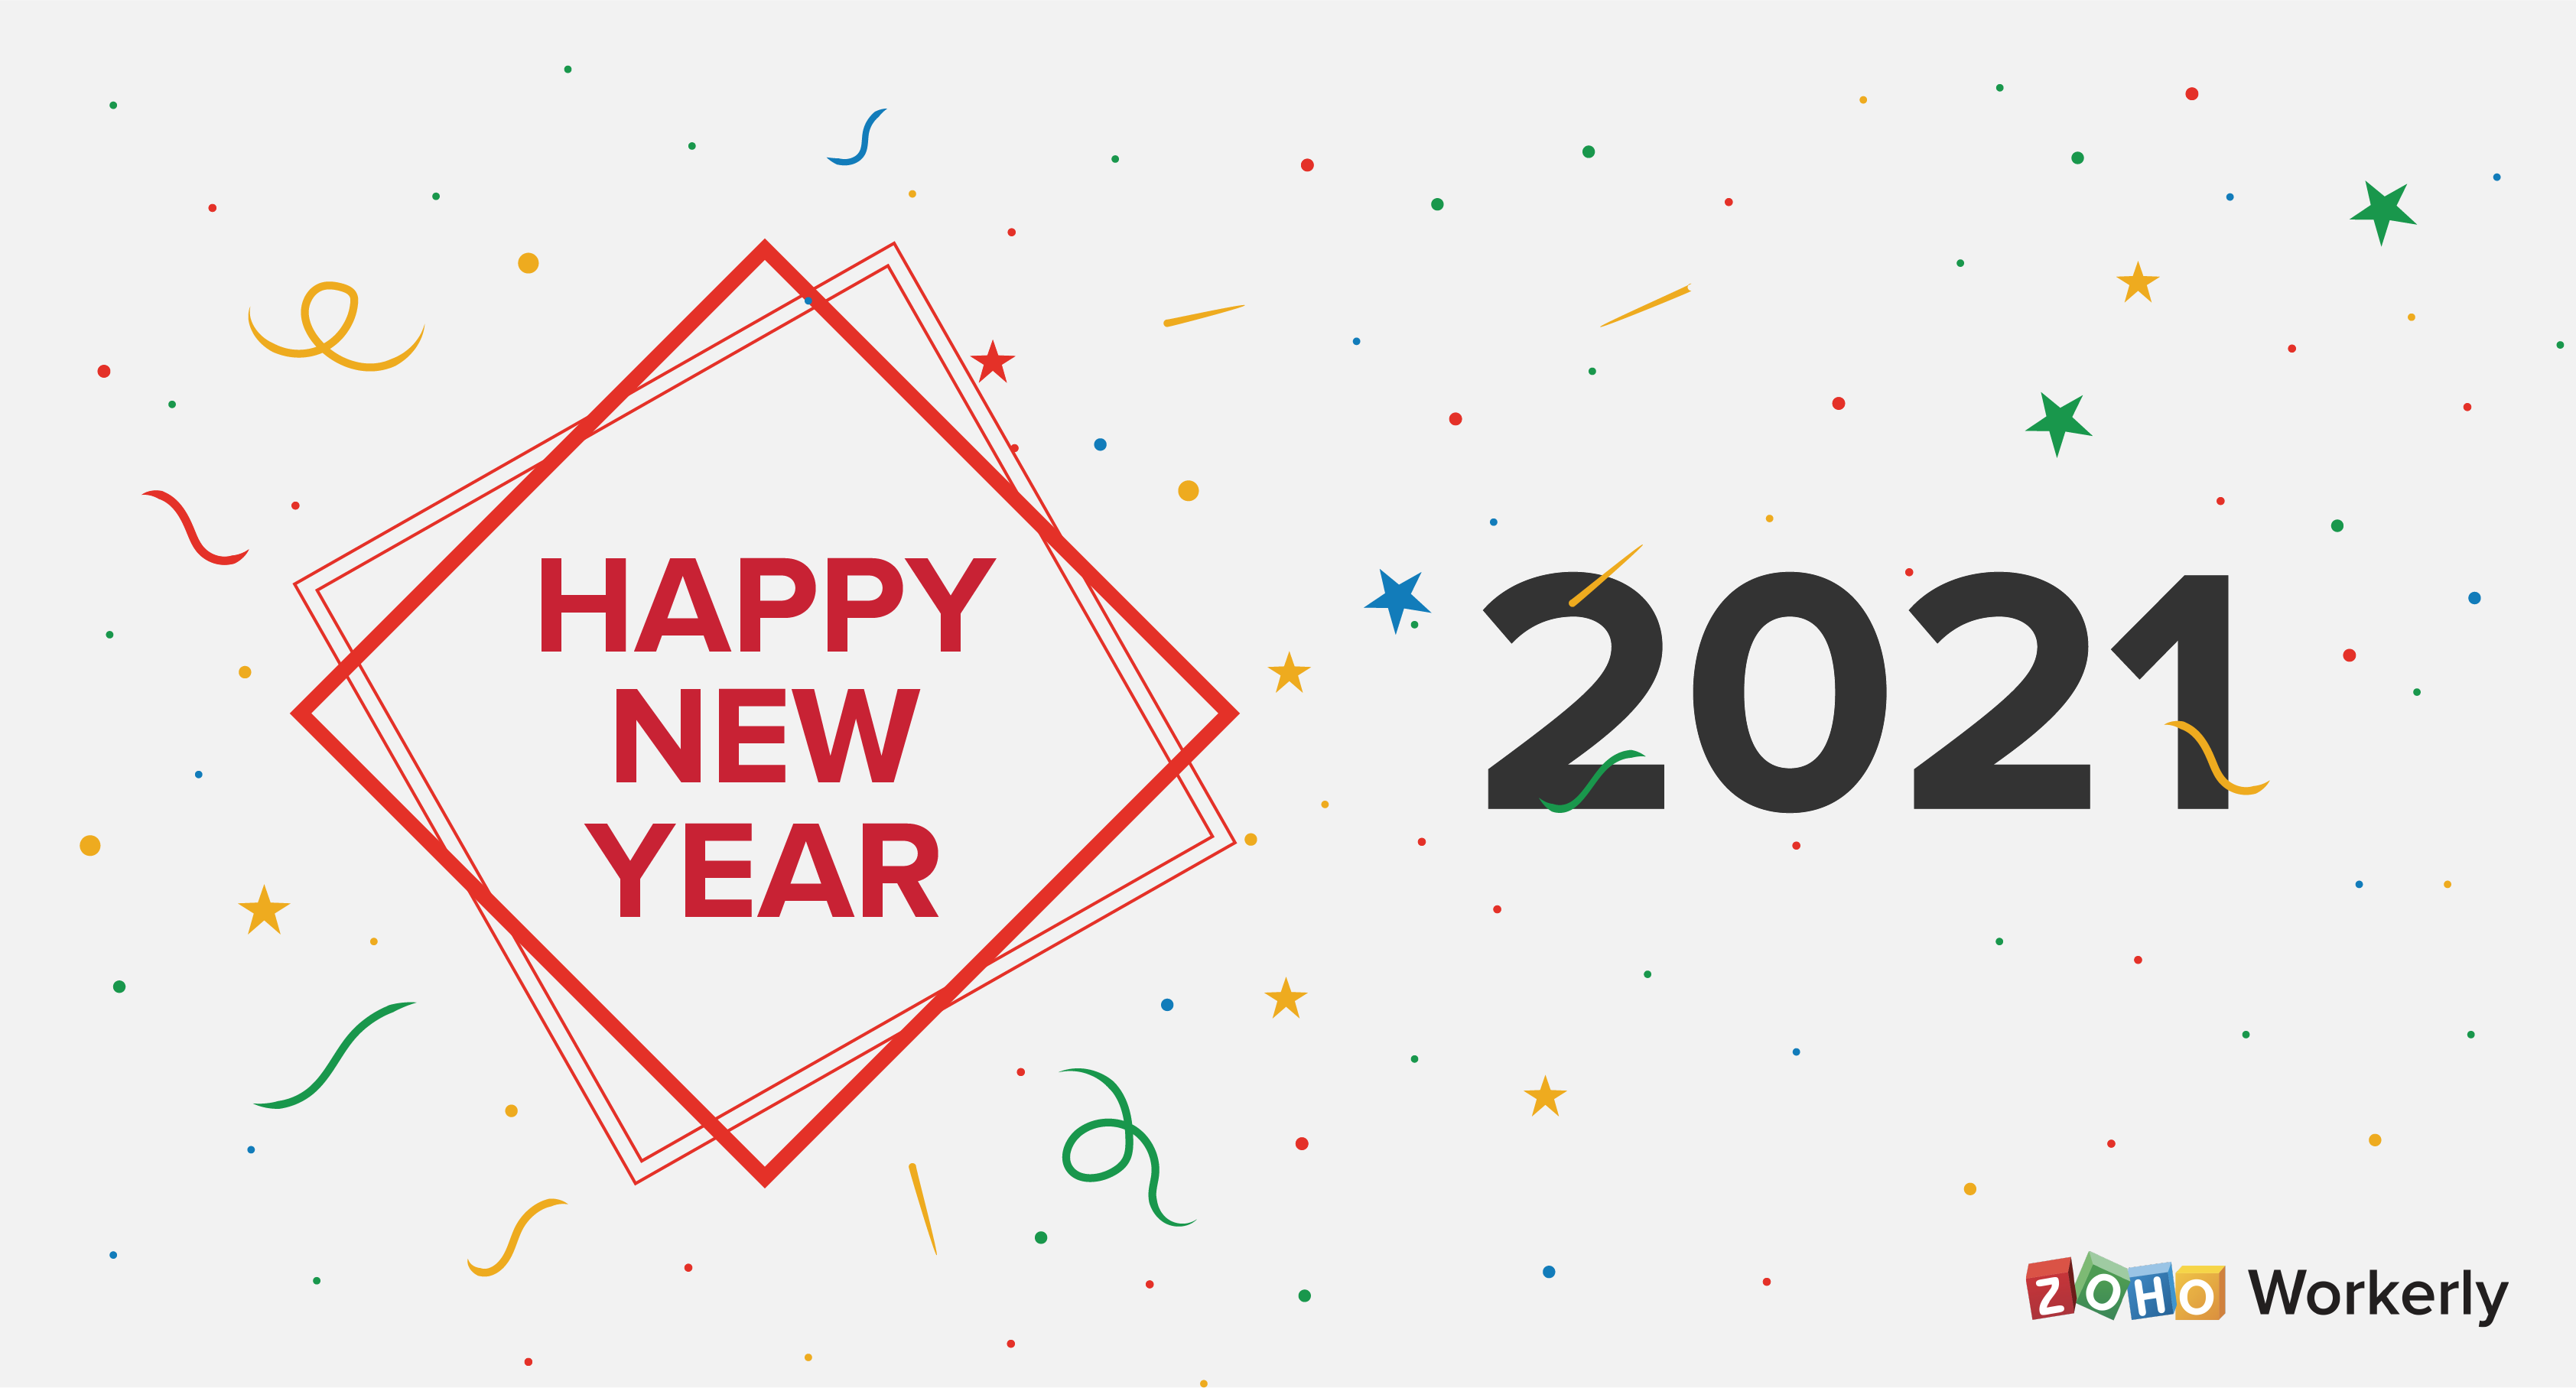 Zoho Workerly wishing a happy new year